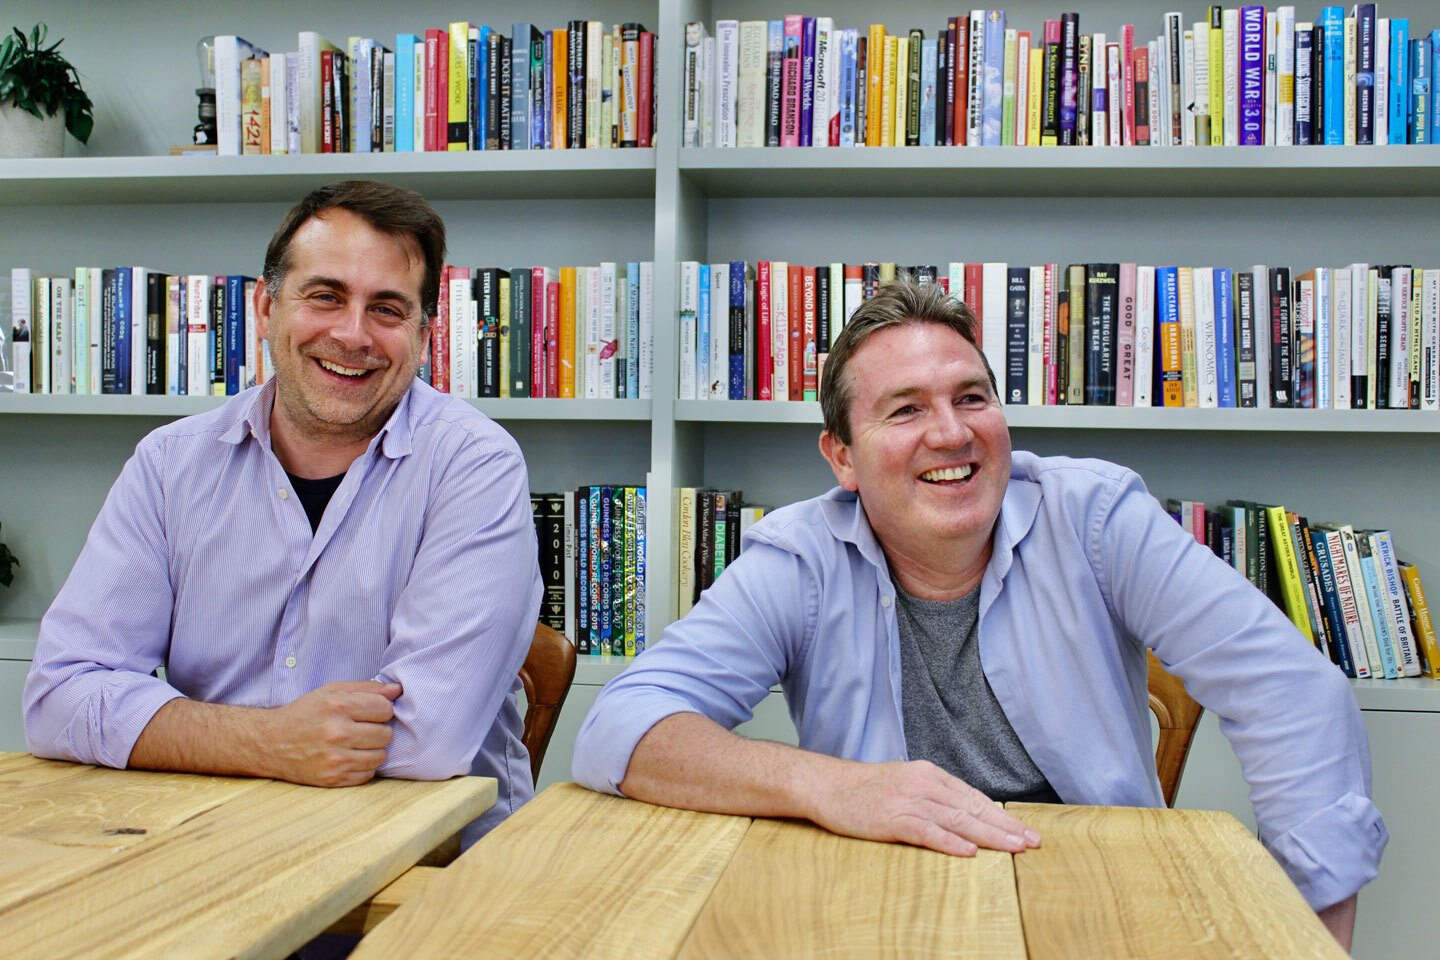 Wagestream's co-founders Portman Wills (left) and Peter Biffet (right)